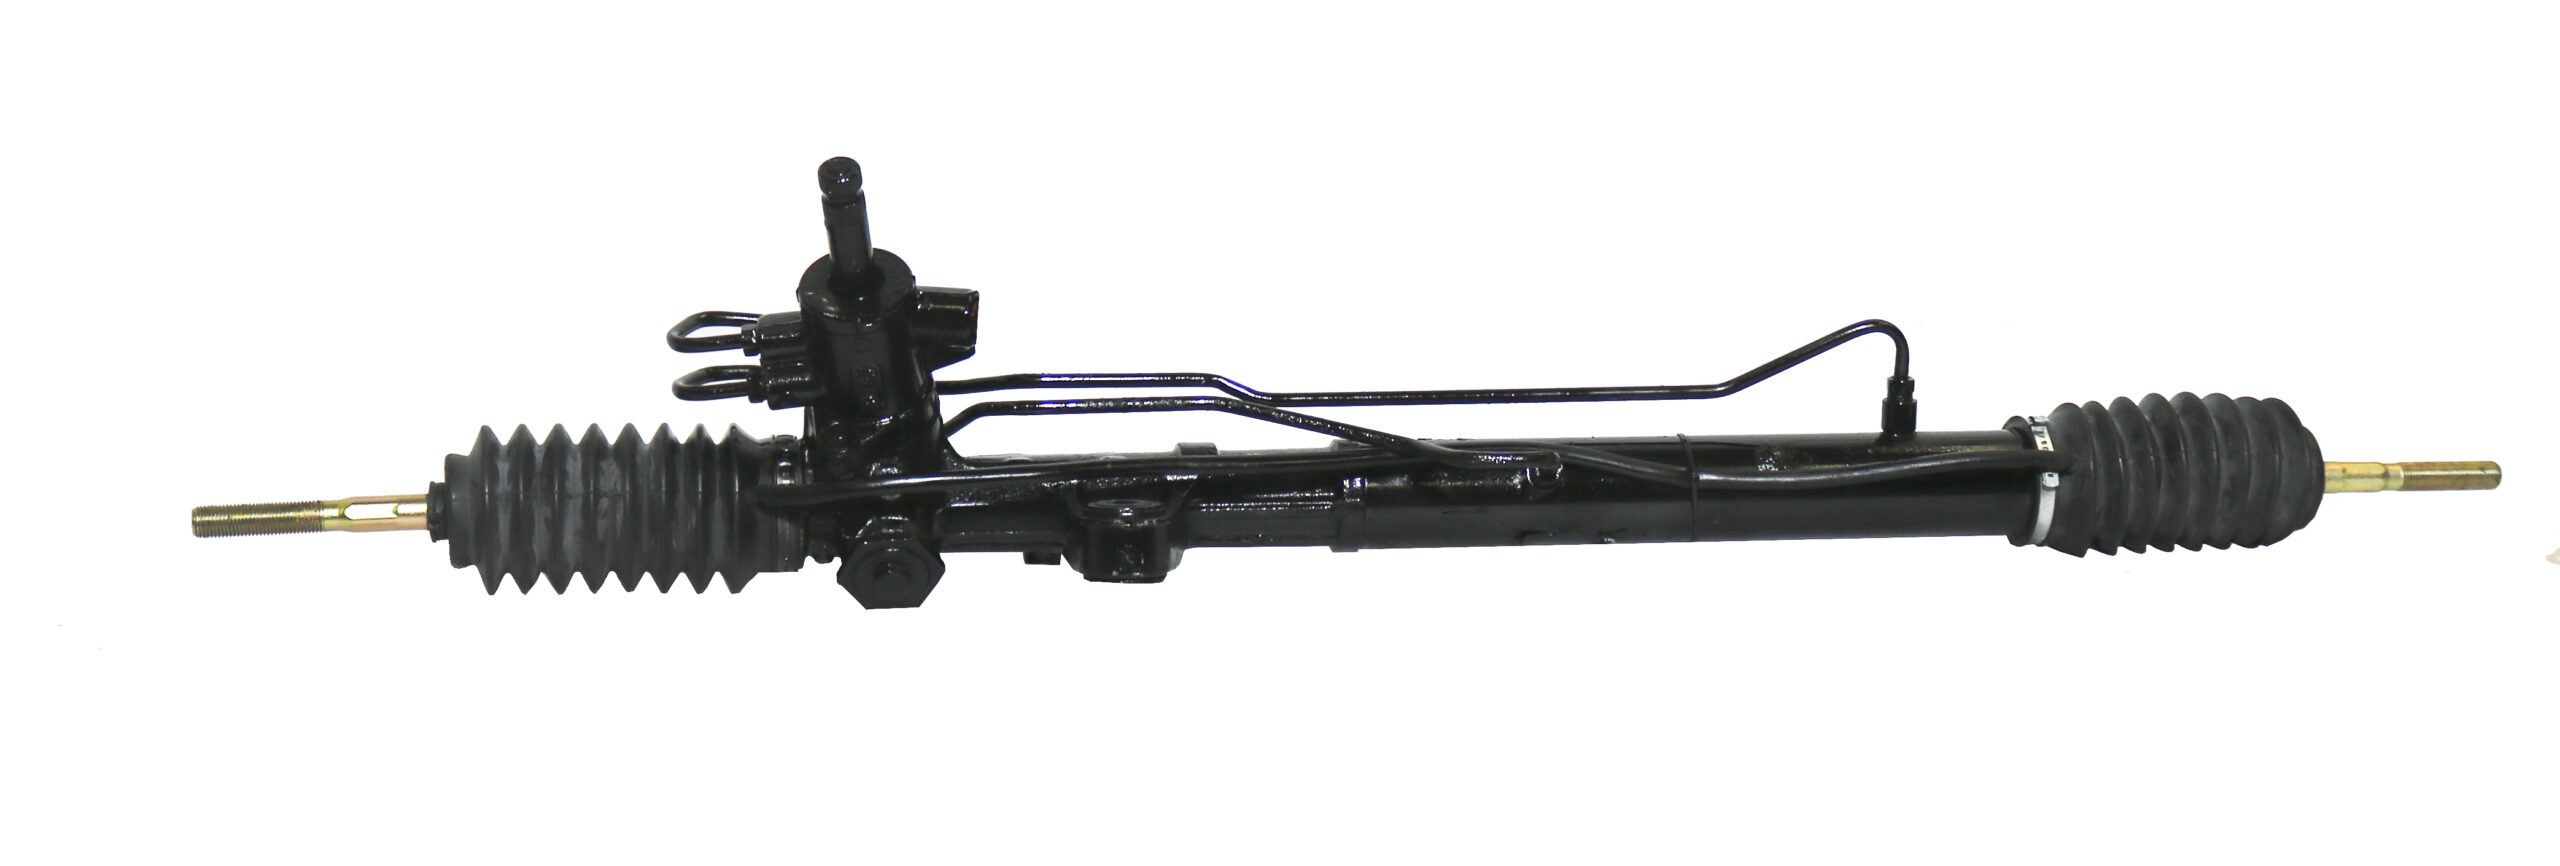 Late ninties Acura CL hydrolic rack and pinion steering gear